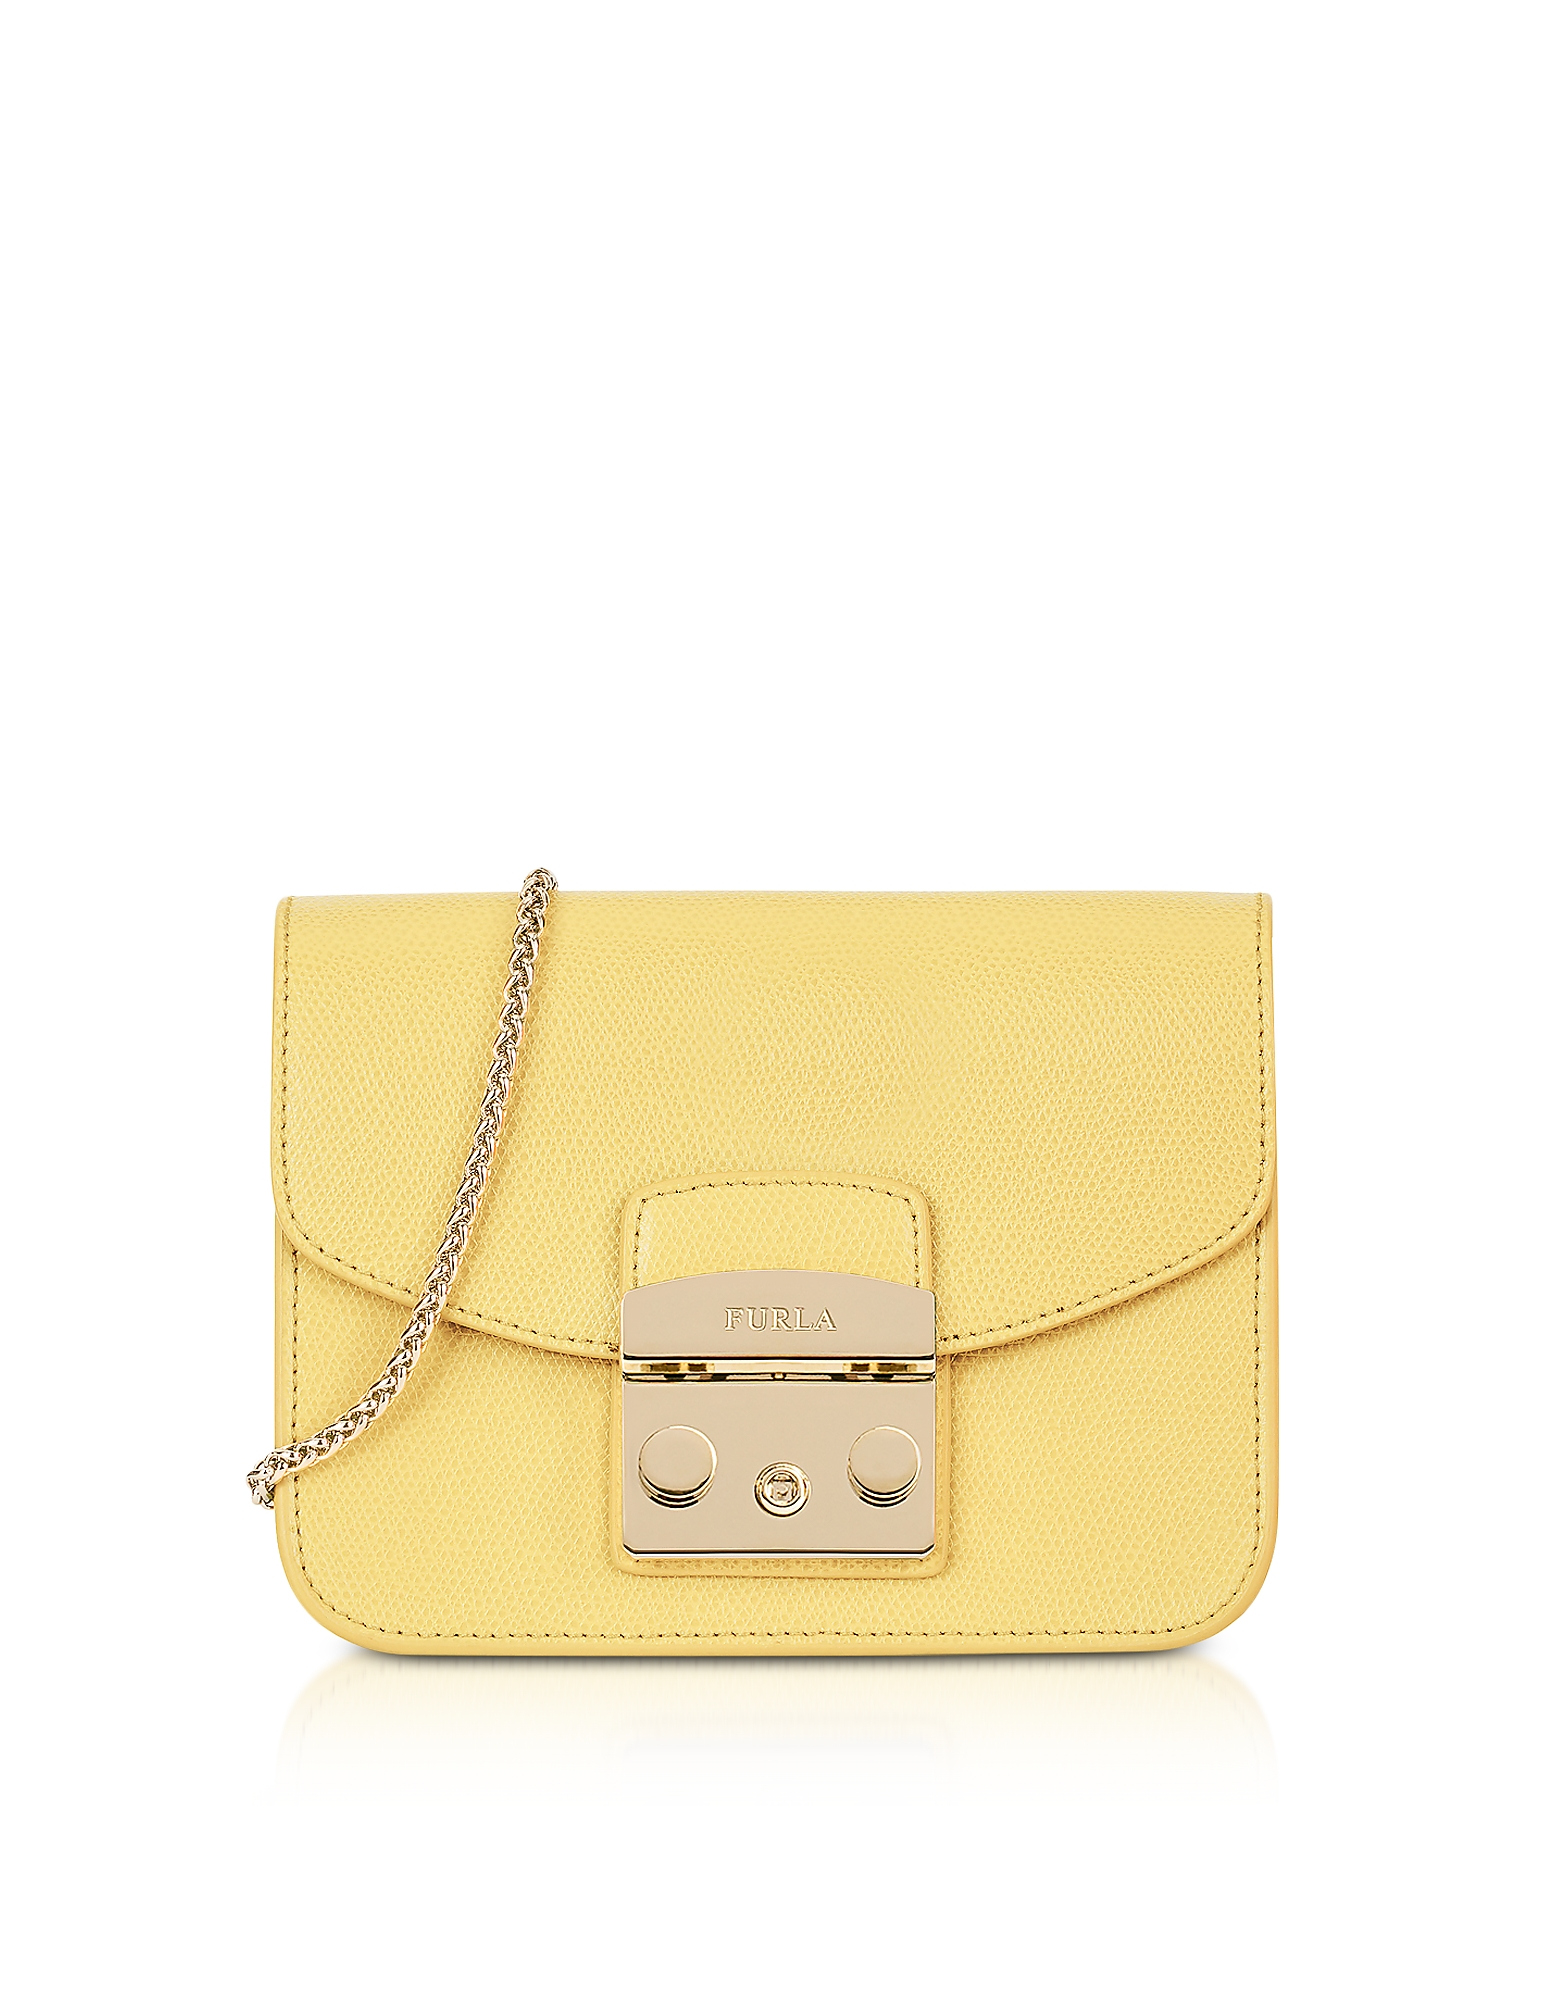 Furla Handbags, Cedar Leather Metropolis Mini Crossbody Bag